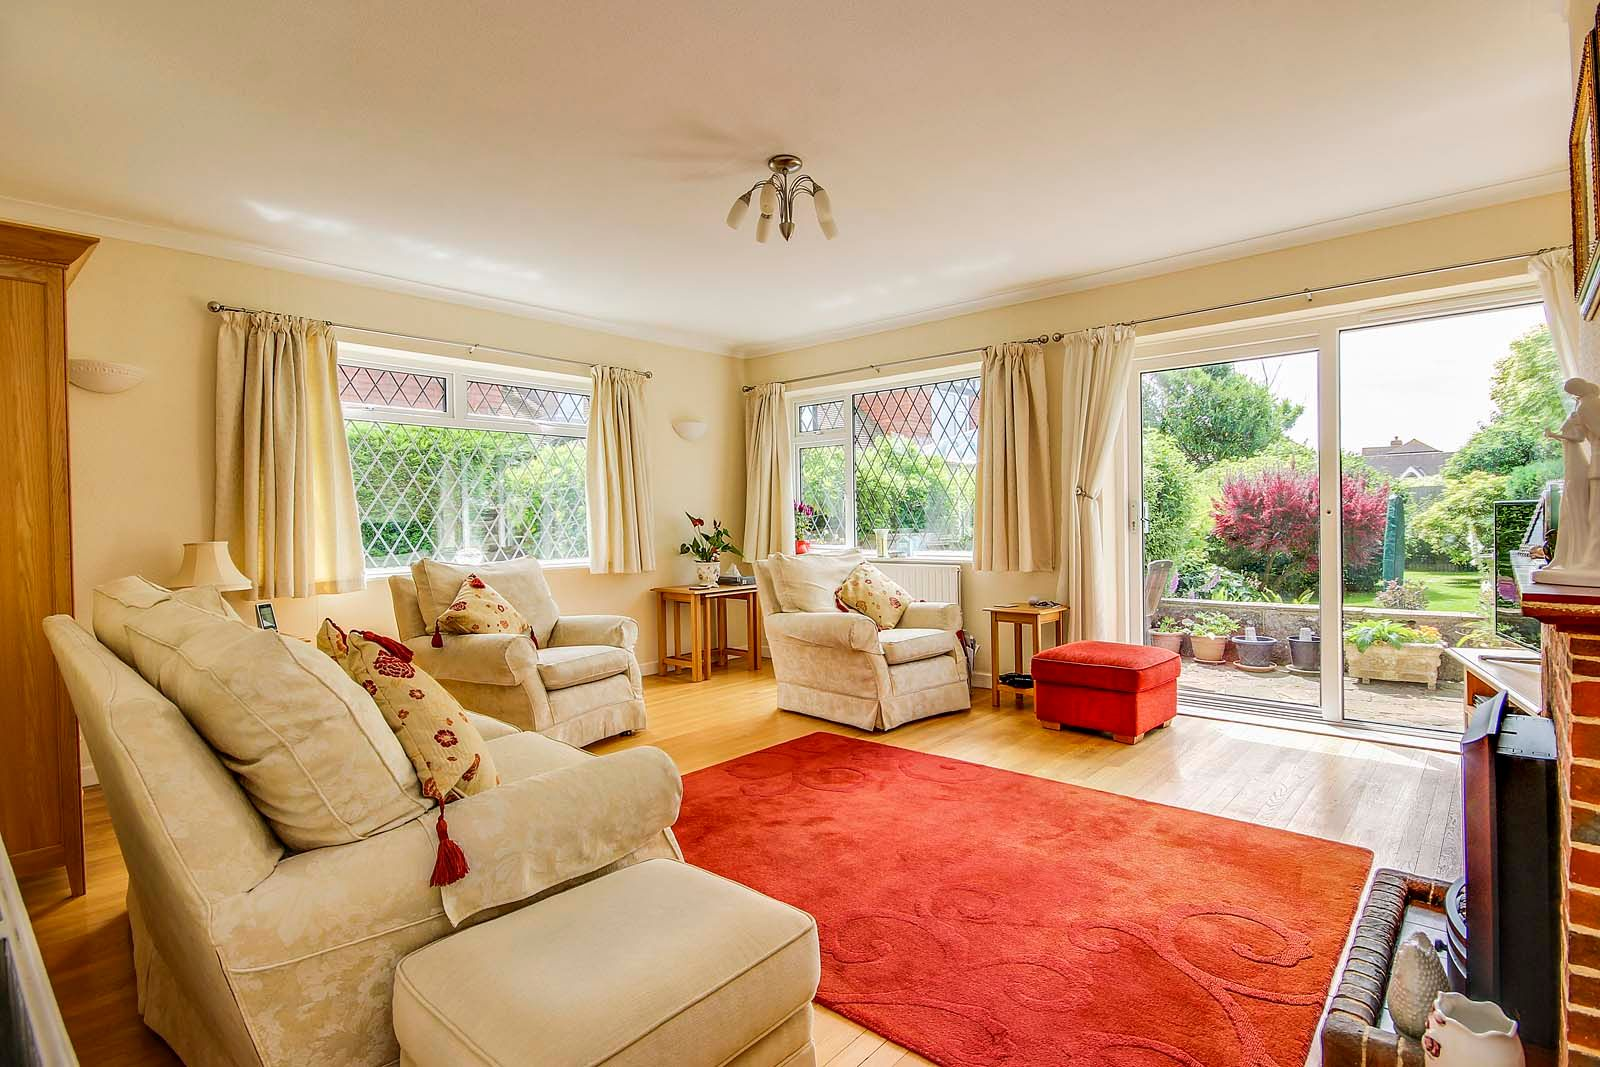 3 bed House for sale in Rustington - Sitting room (Property Image 1)